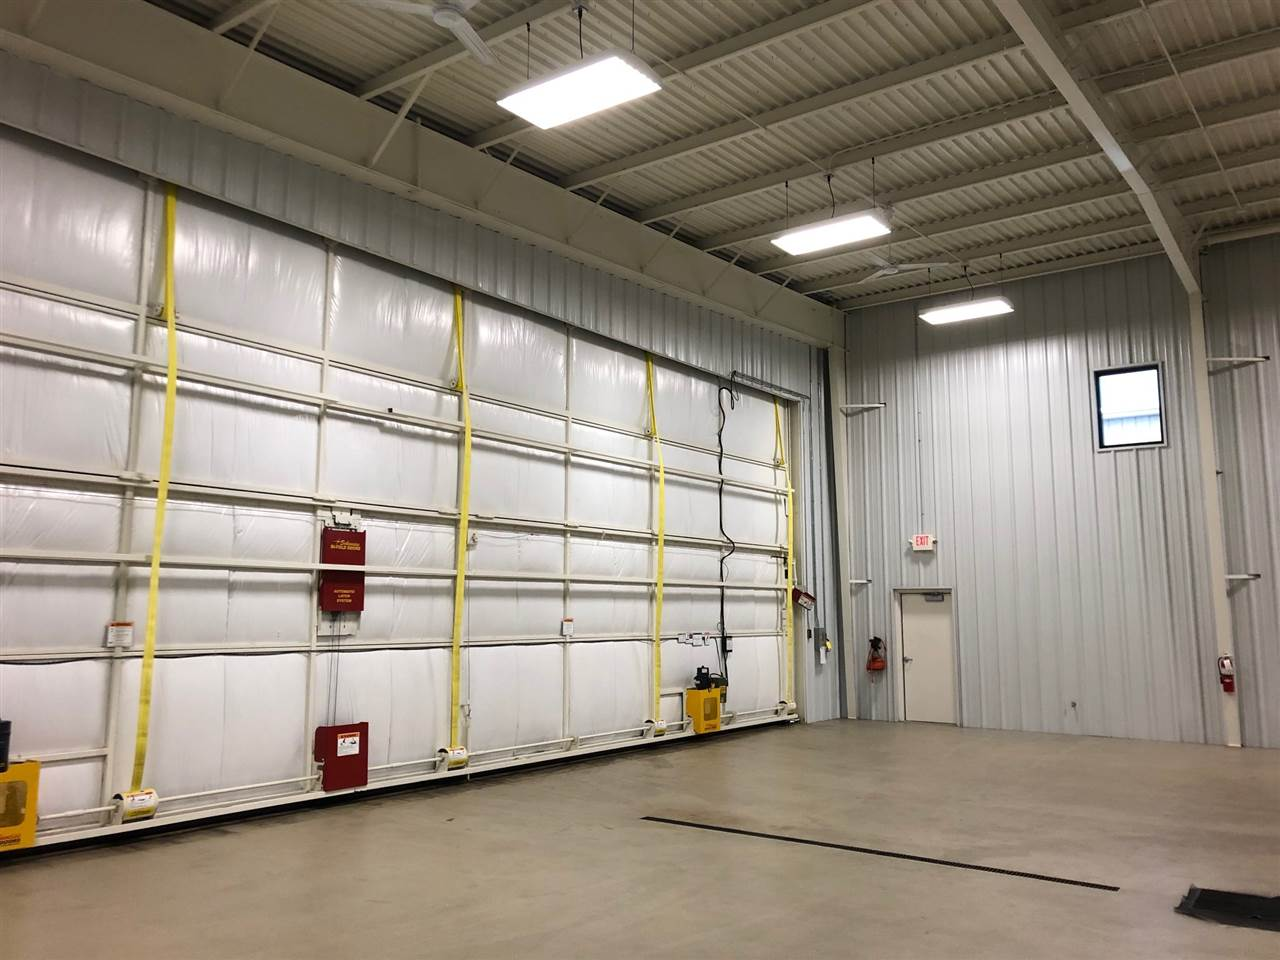 Remote controlled hangar bi-fold door measures 50 ft wide and 16 ft. vertical access. Epoxy coated floor for wash-down and snow melting. Apron has heating for snow melt.